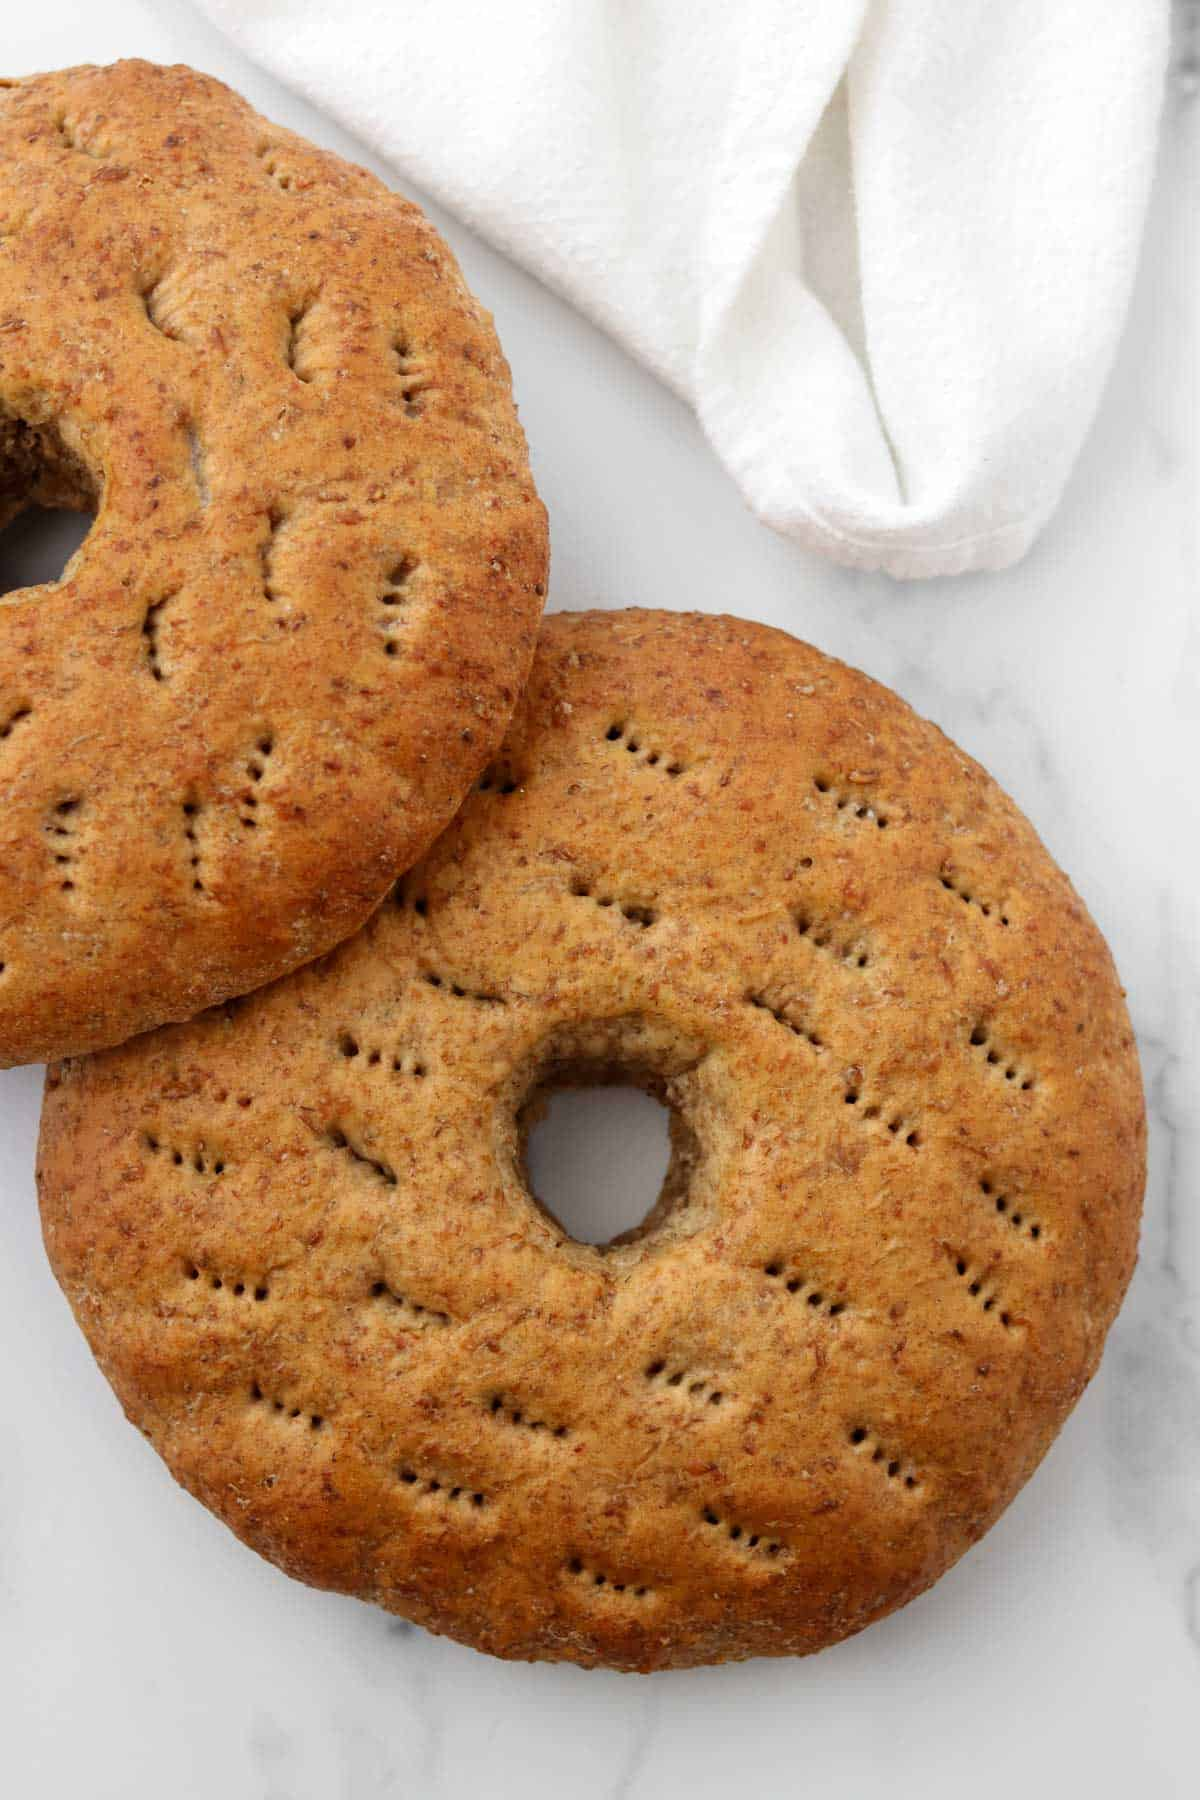 Finnish rye bread rings on a marble surface.